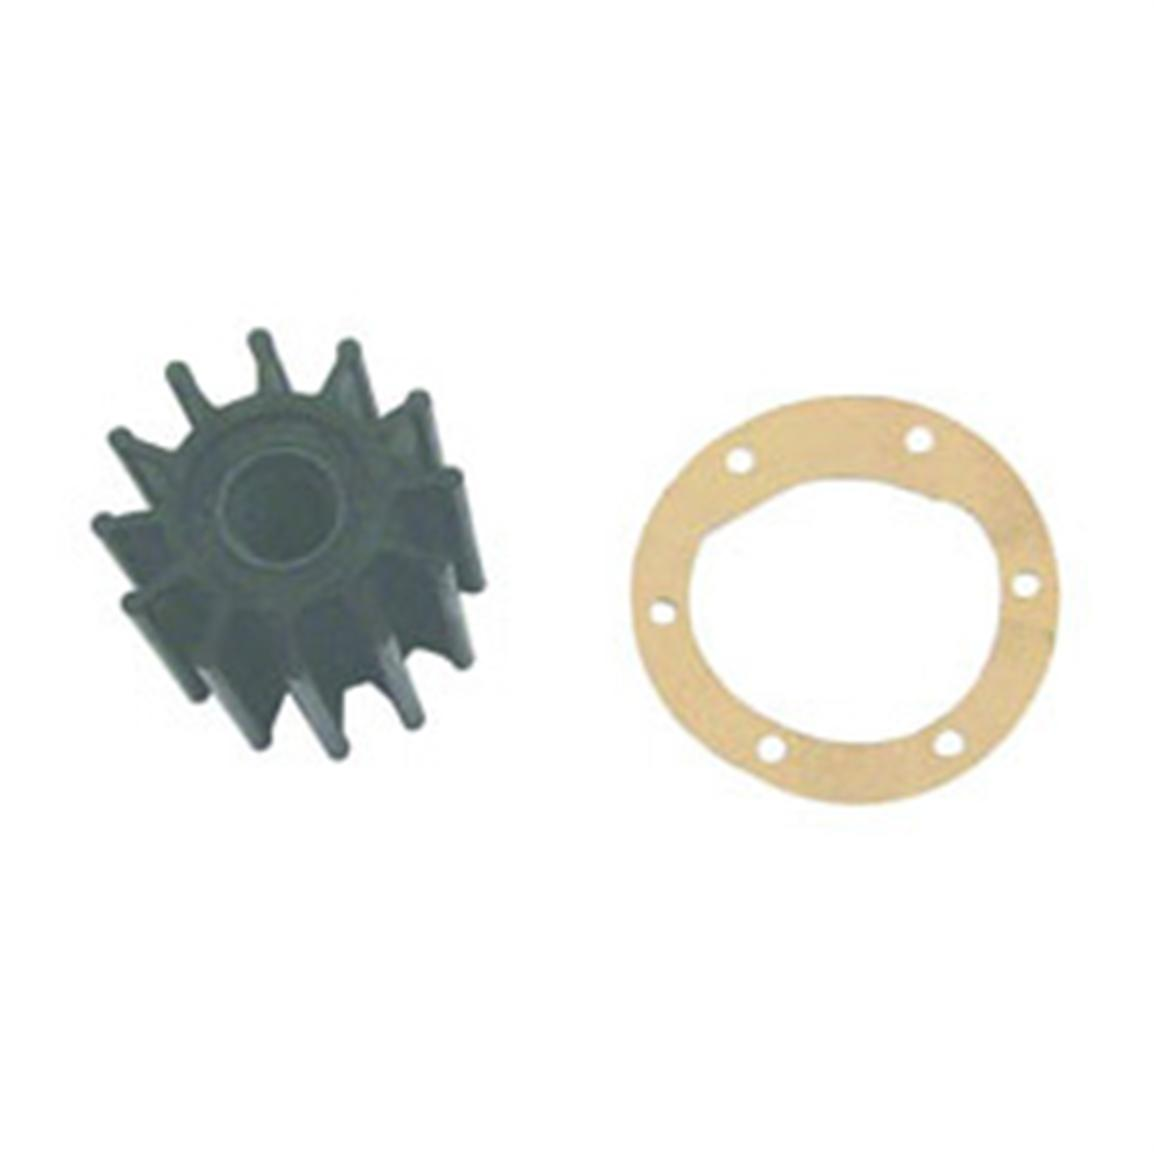 Sierra Impeller Kit for Volvo Penta, Replaces 876120 / AQV6-AQV8 engines